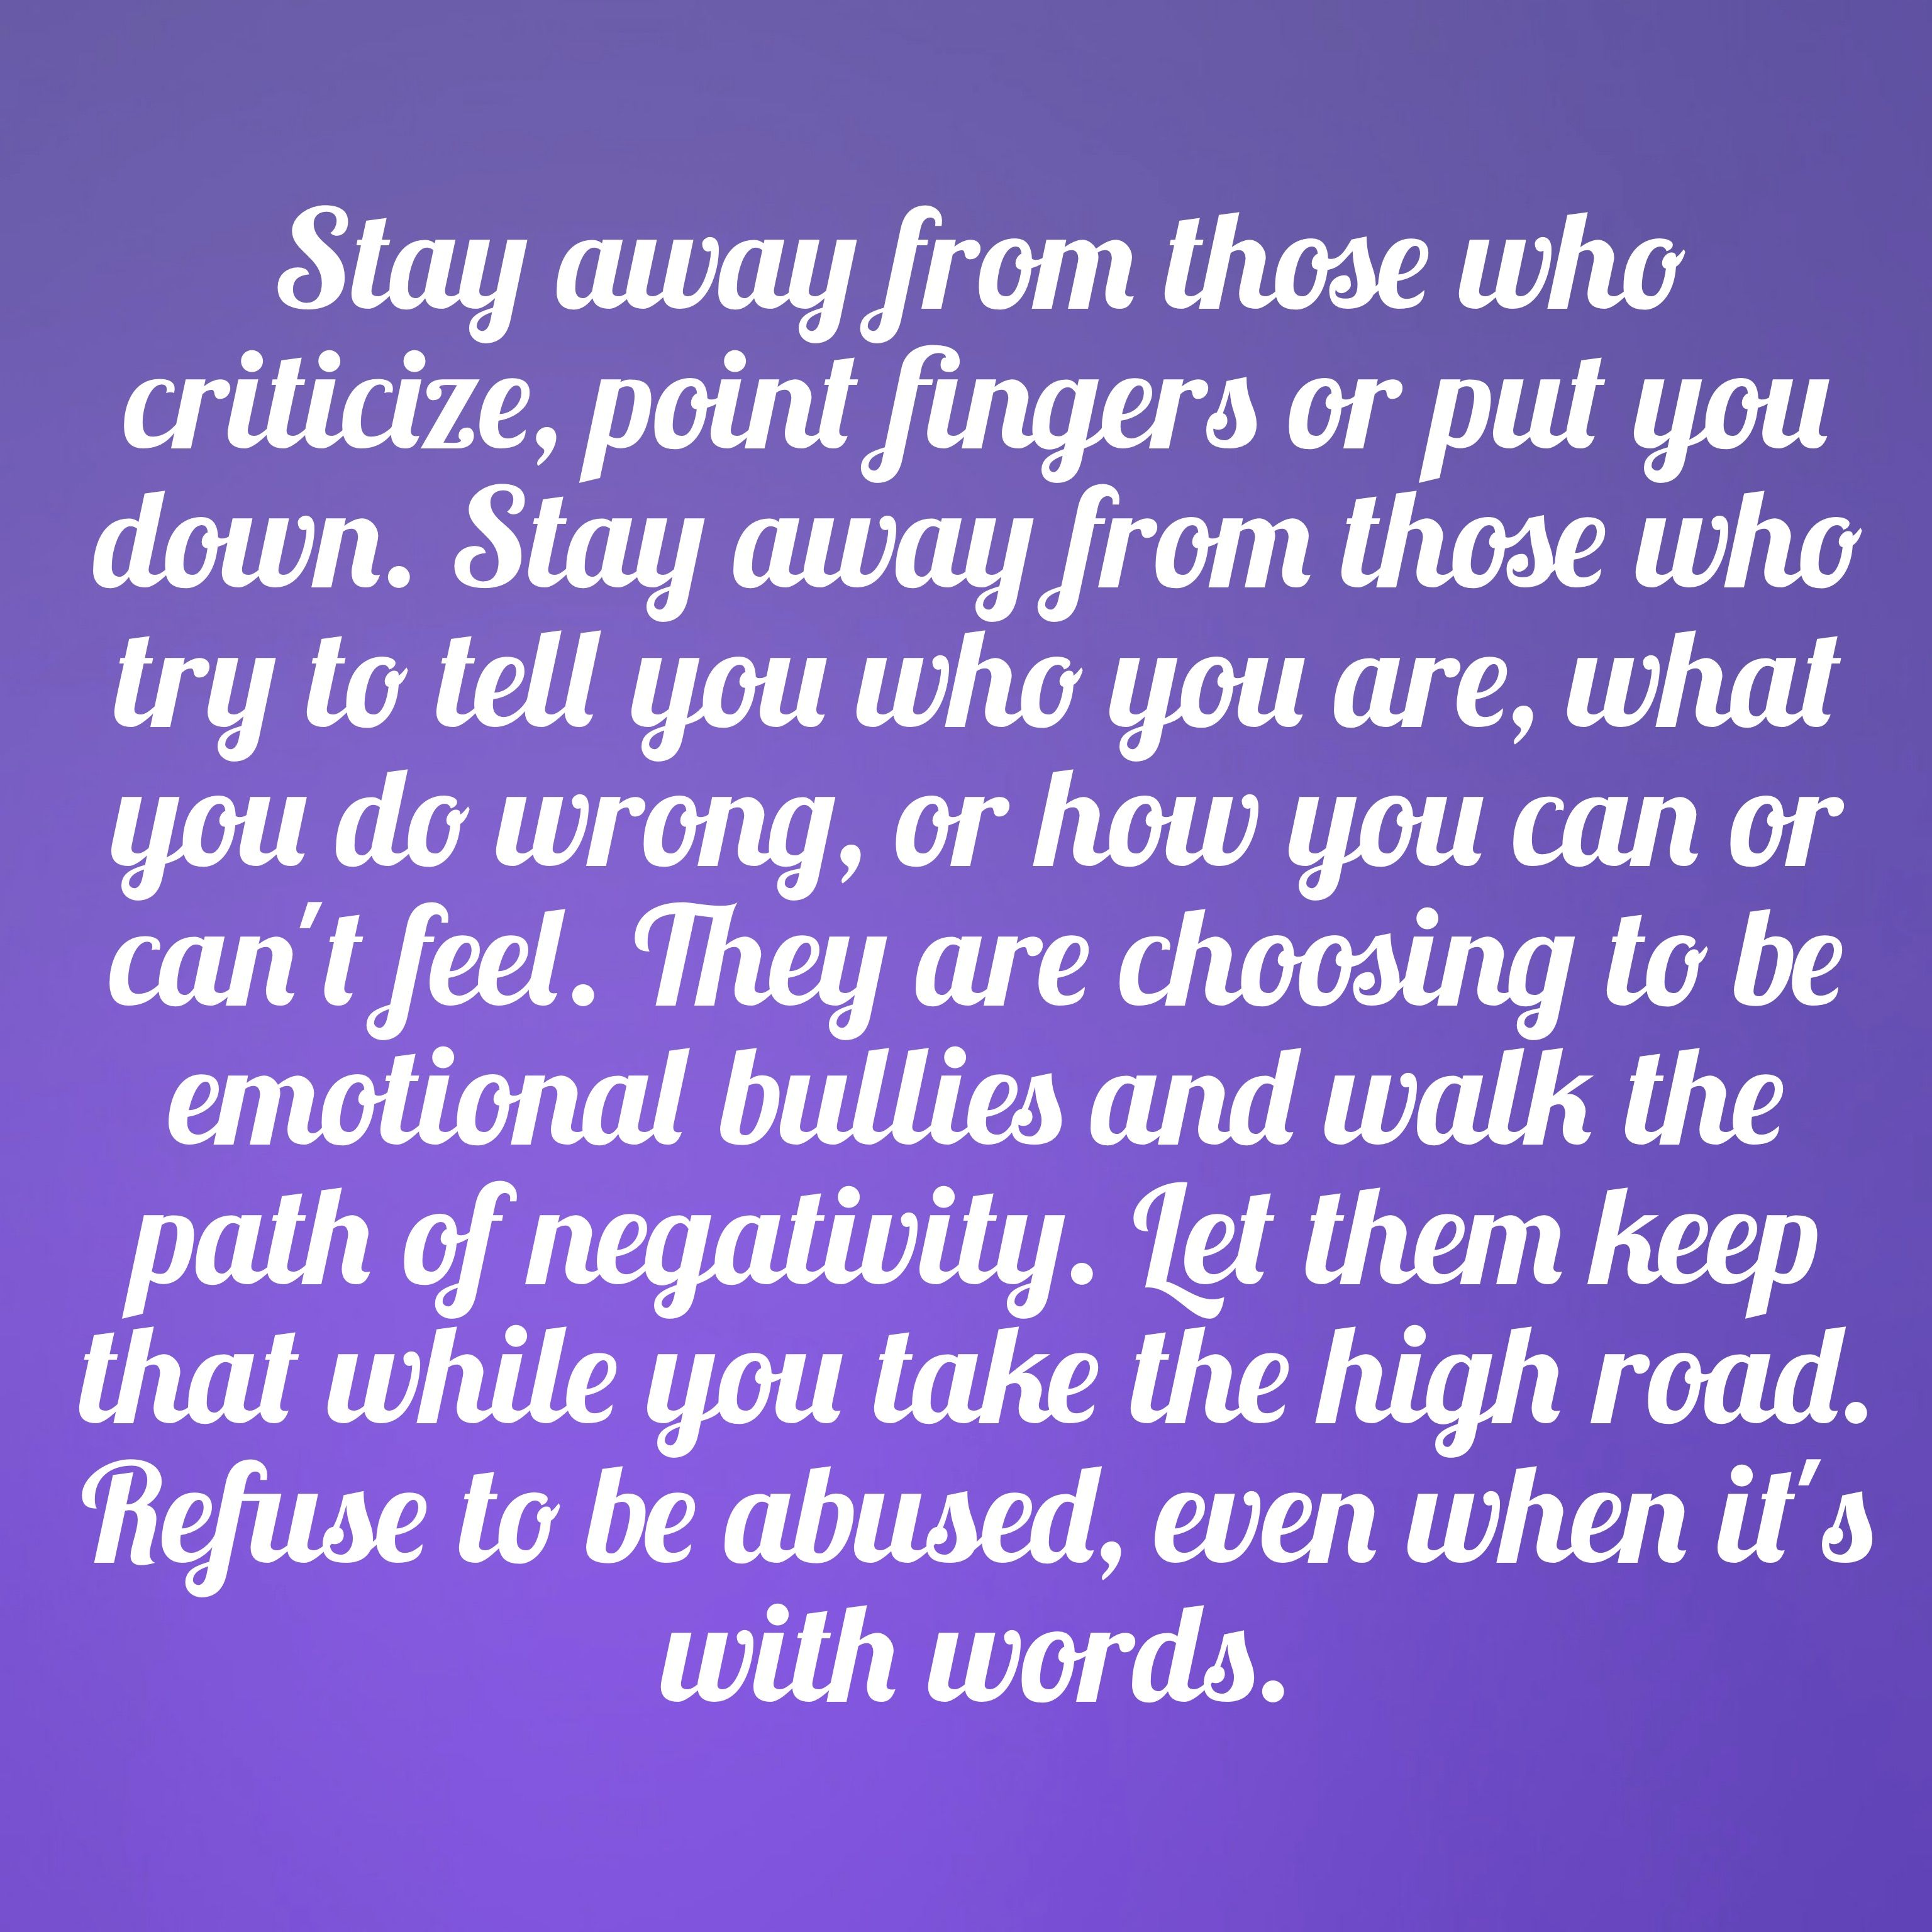 Insulting Rude Insensitive Critical People. People Who Put